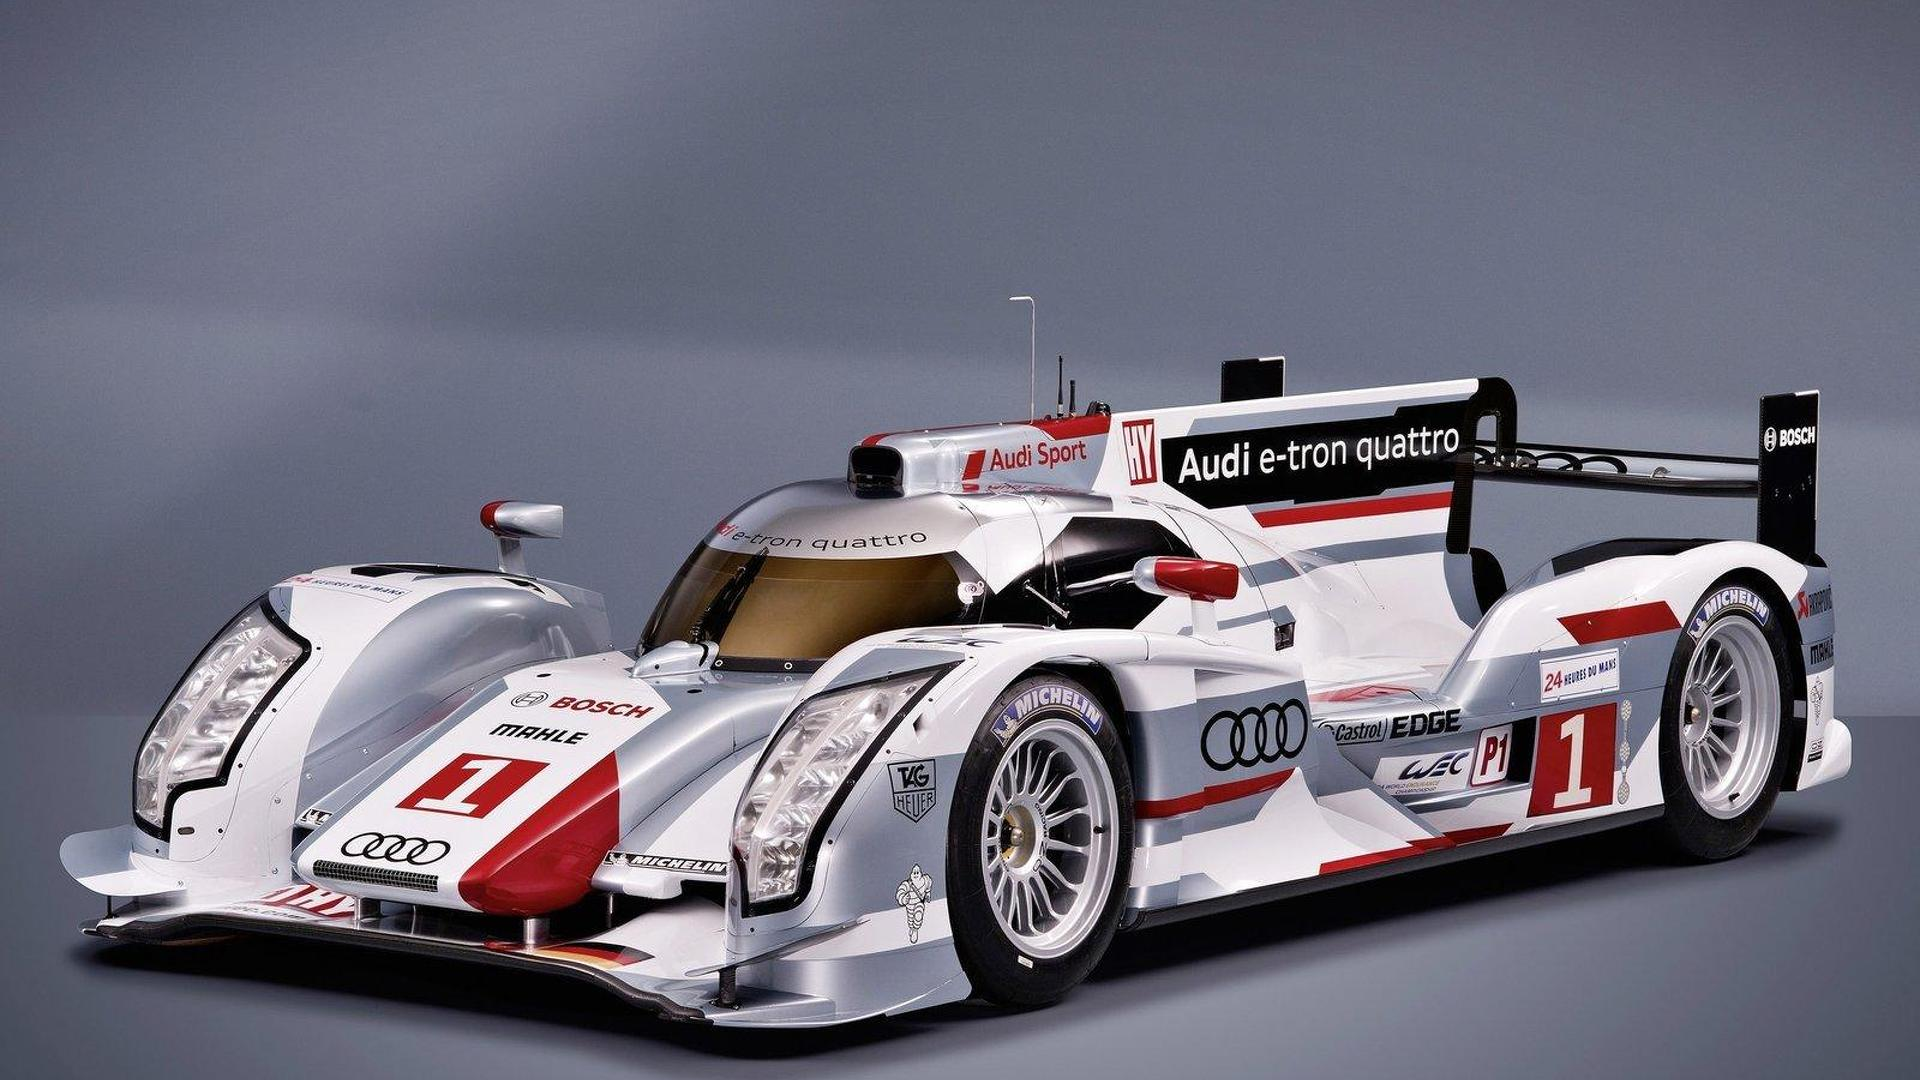 2016 Audi R20 to be a street-legal LeMans car - report